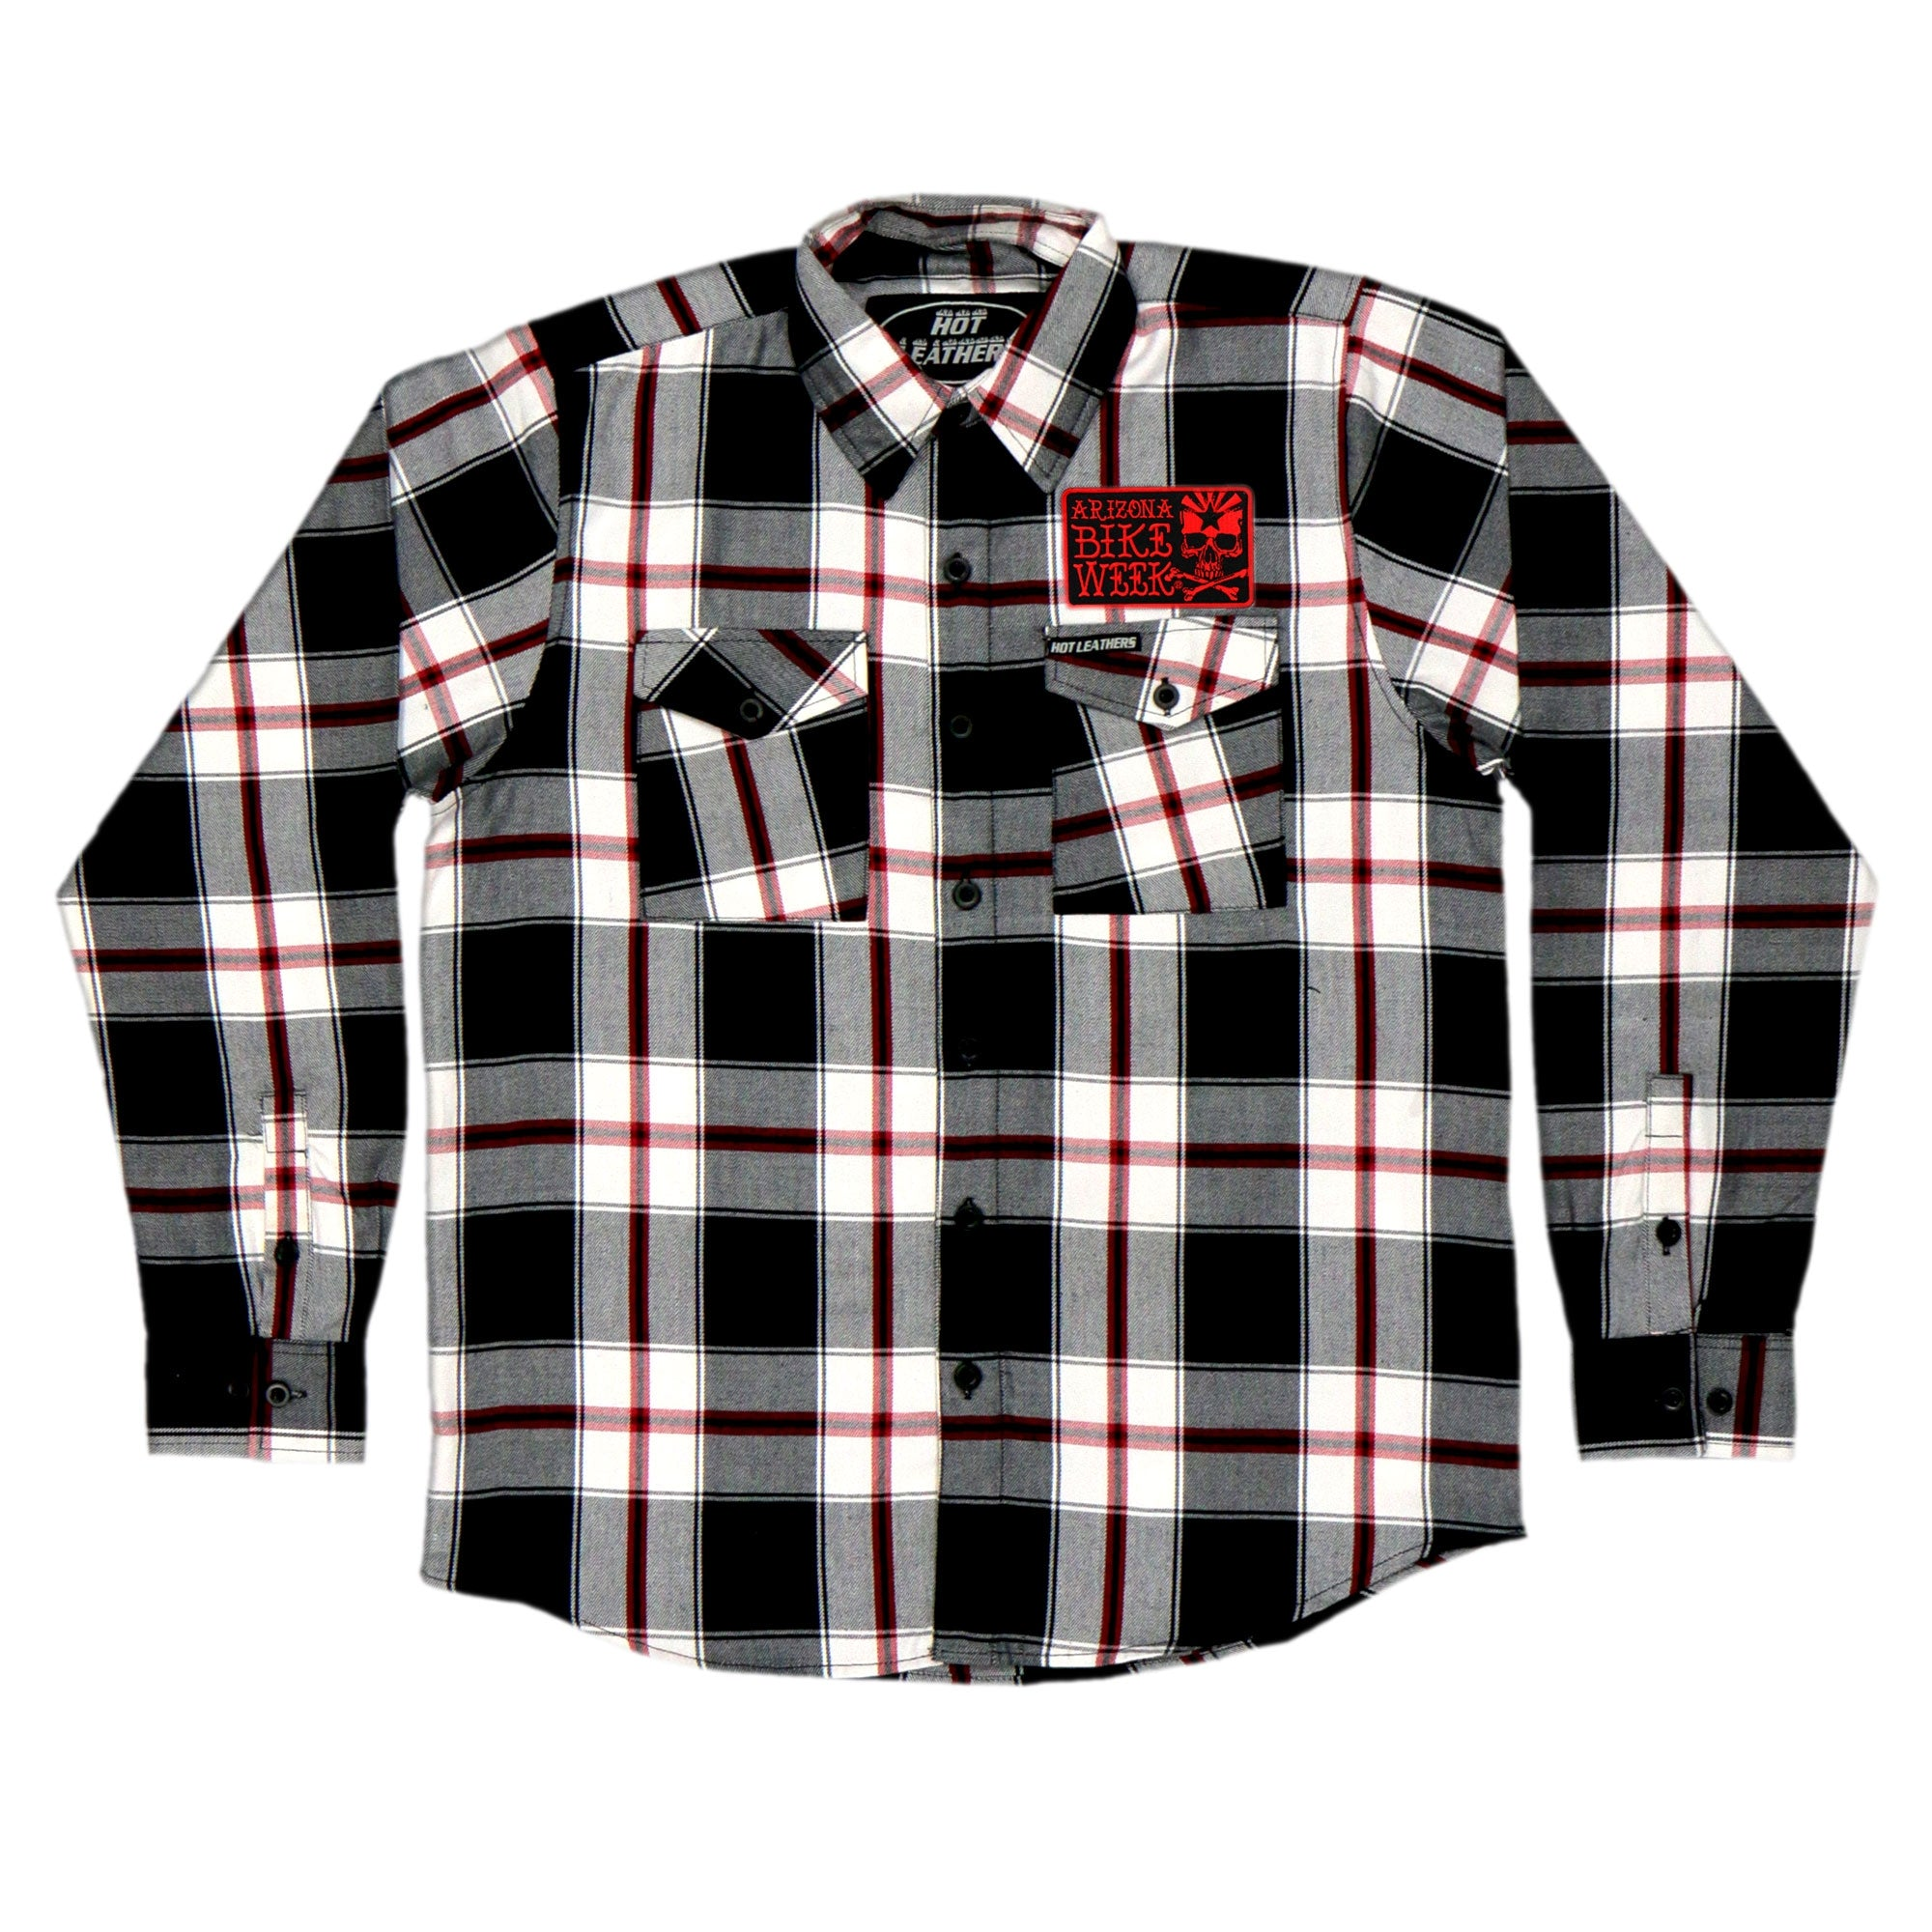 Official 2020 Arizona Bike Week Black White and Red Flannel